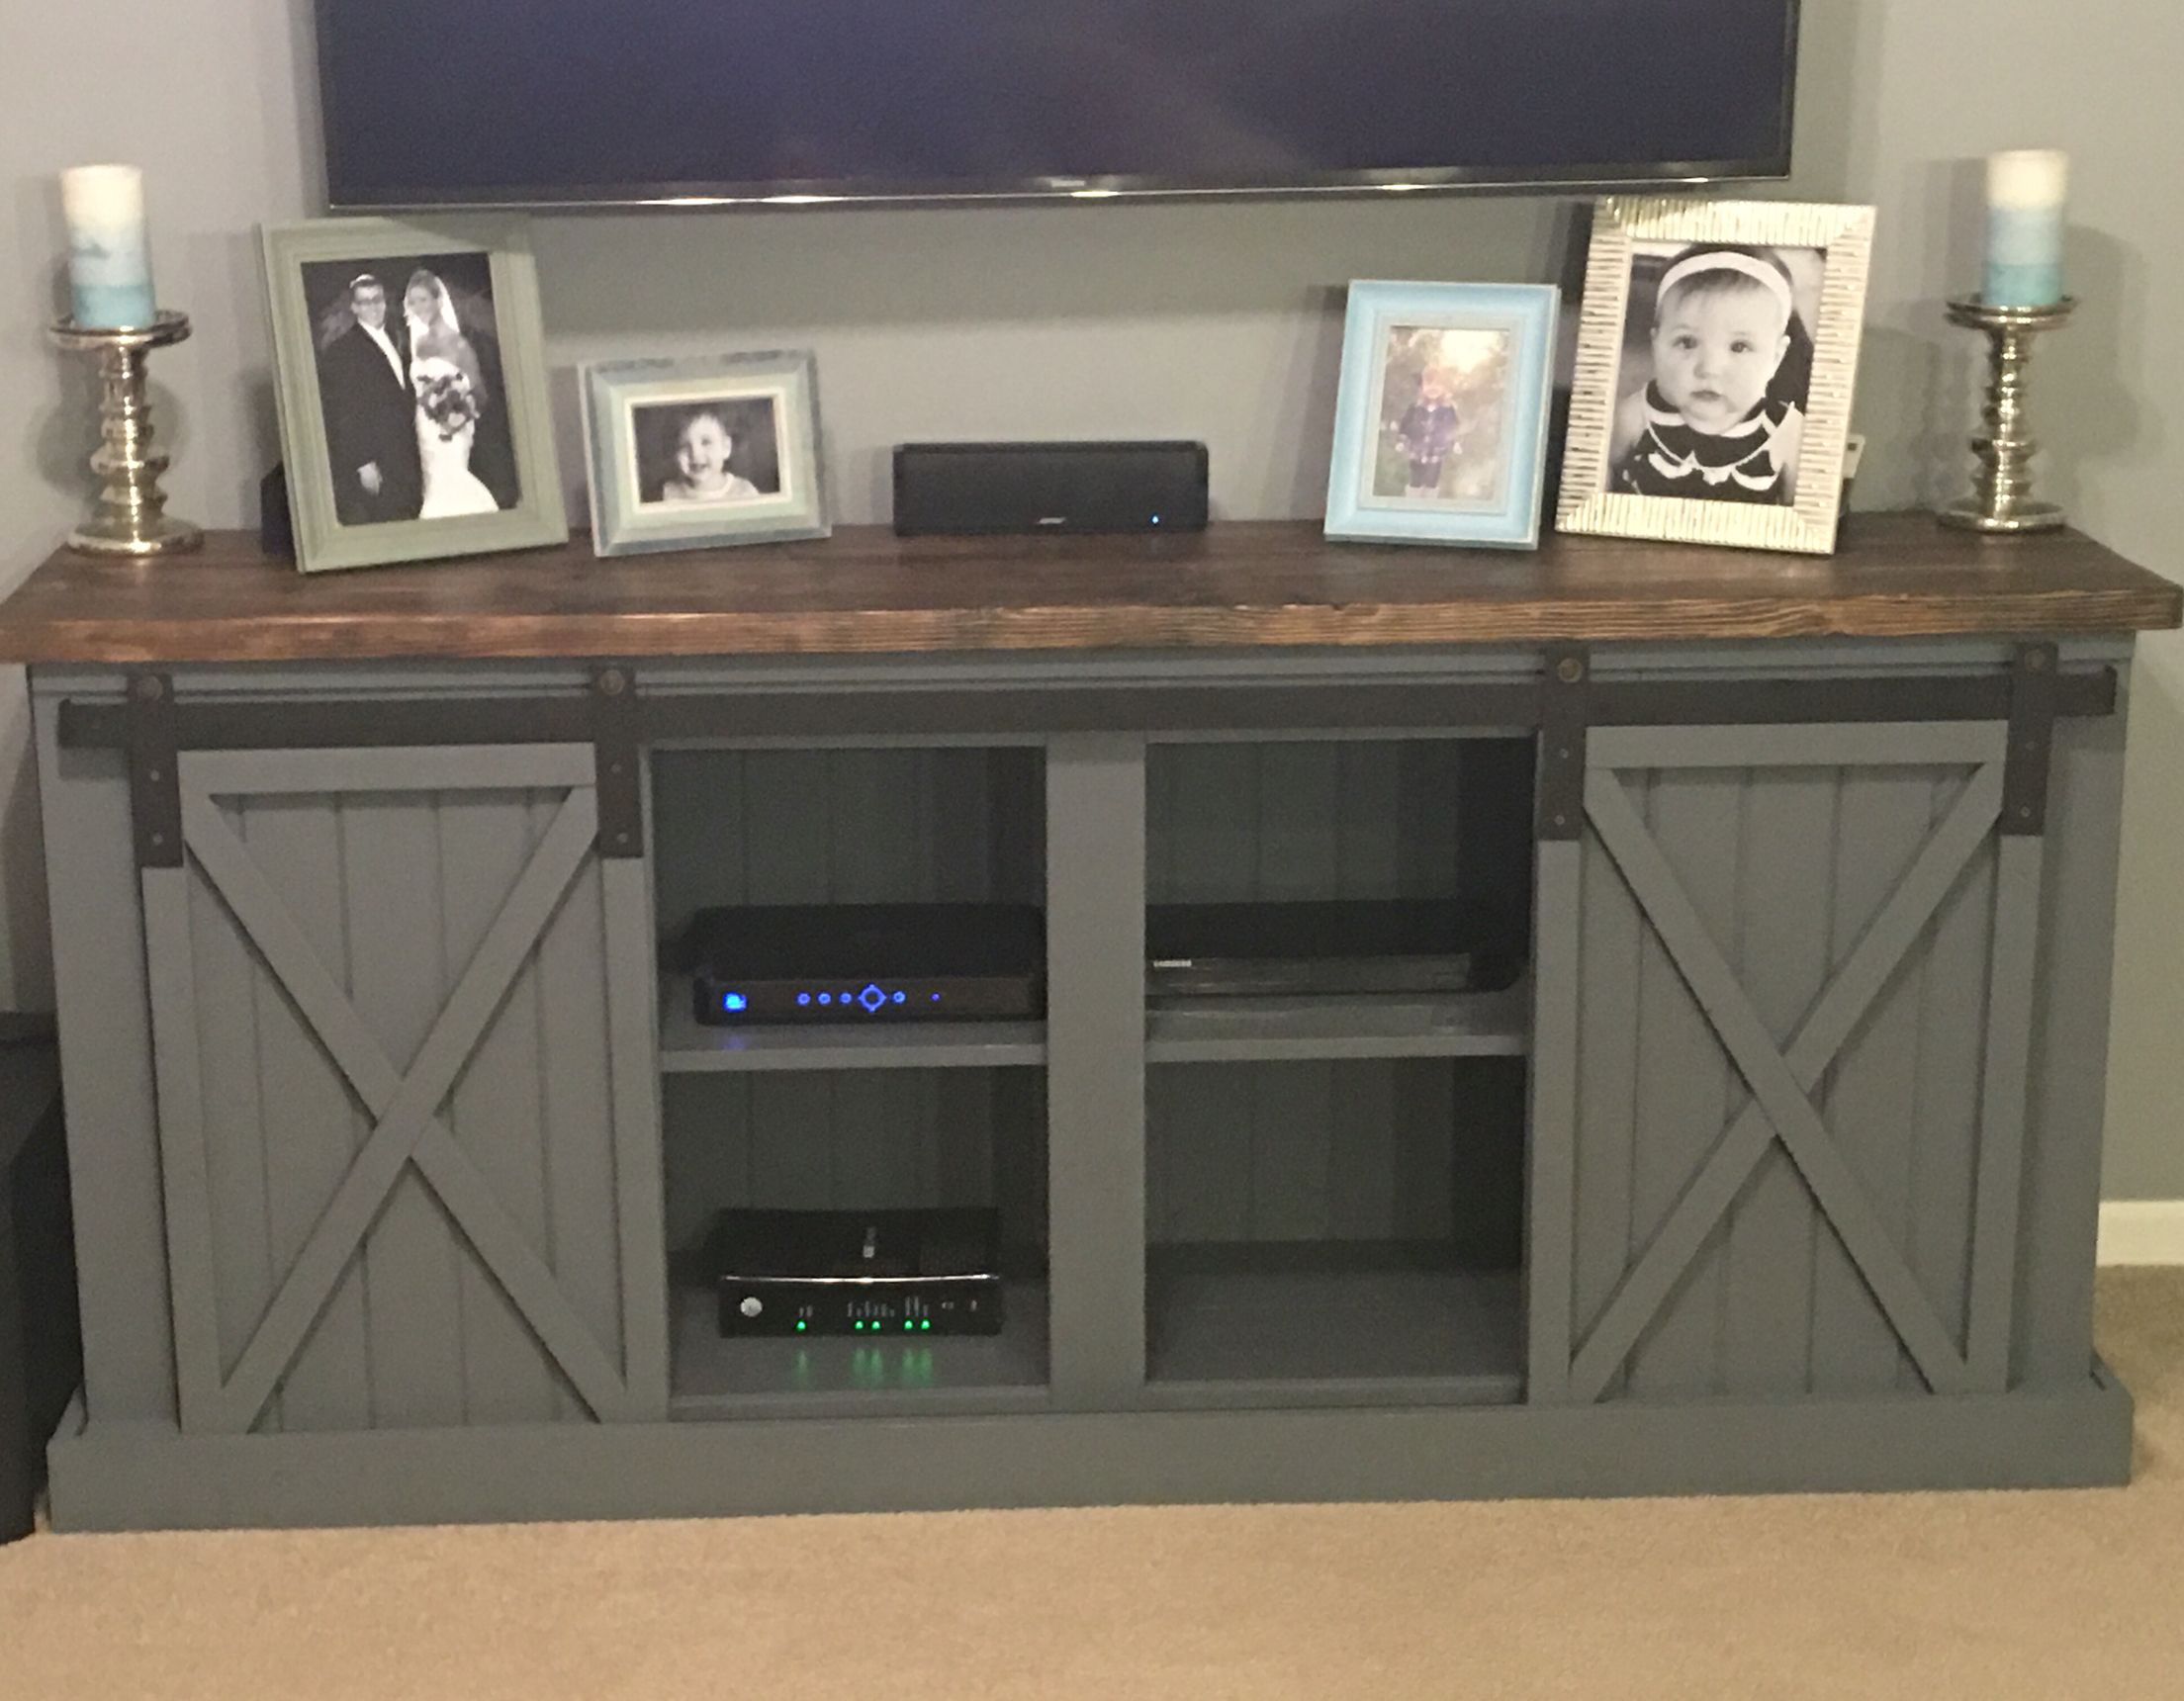 Built In Entertainment Center Design Ideas built in wall entertainment center designs 1000 images about entertainment center ideas on pinterest built decor Our Gorgeous Custom Built Entertainment Center From Ninav Interiors Check Them Out On Facebook And